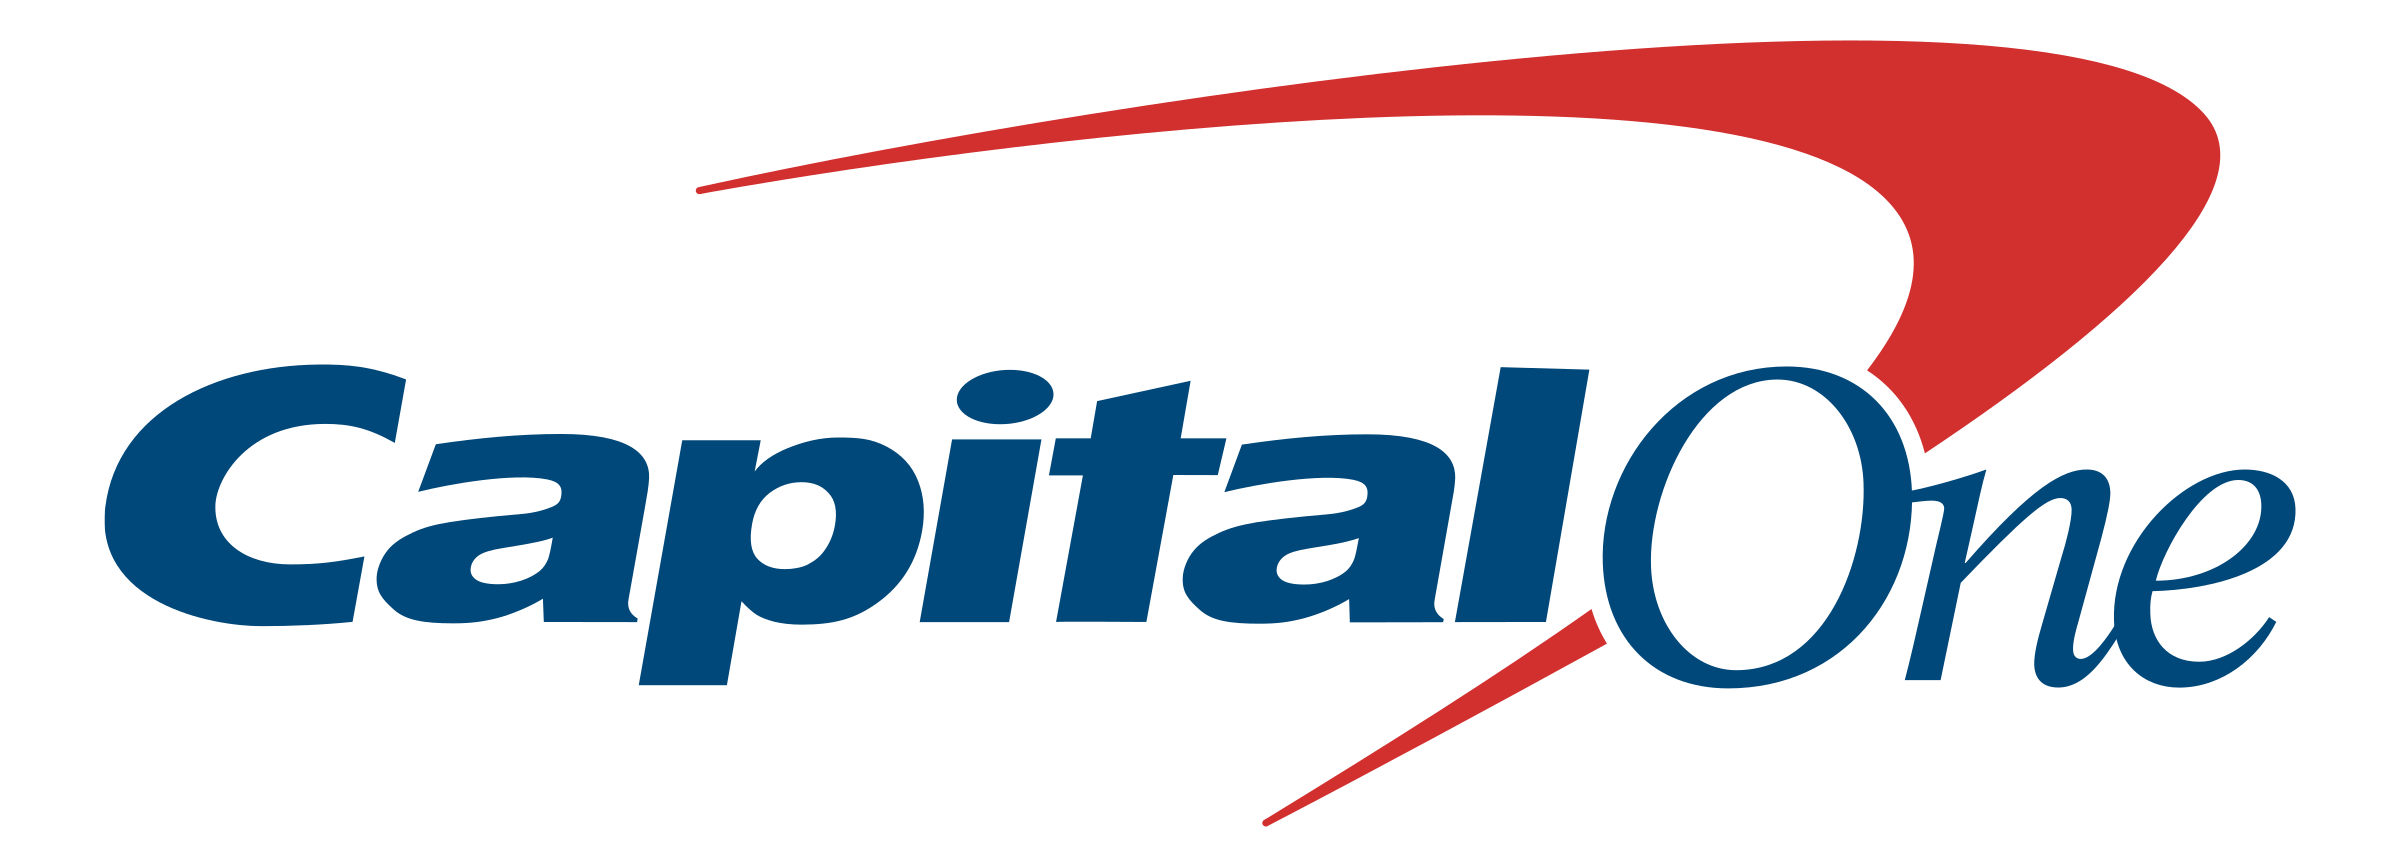 Offer image for Capital One 360 CD